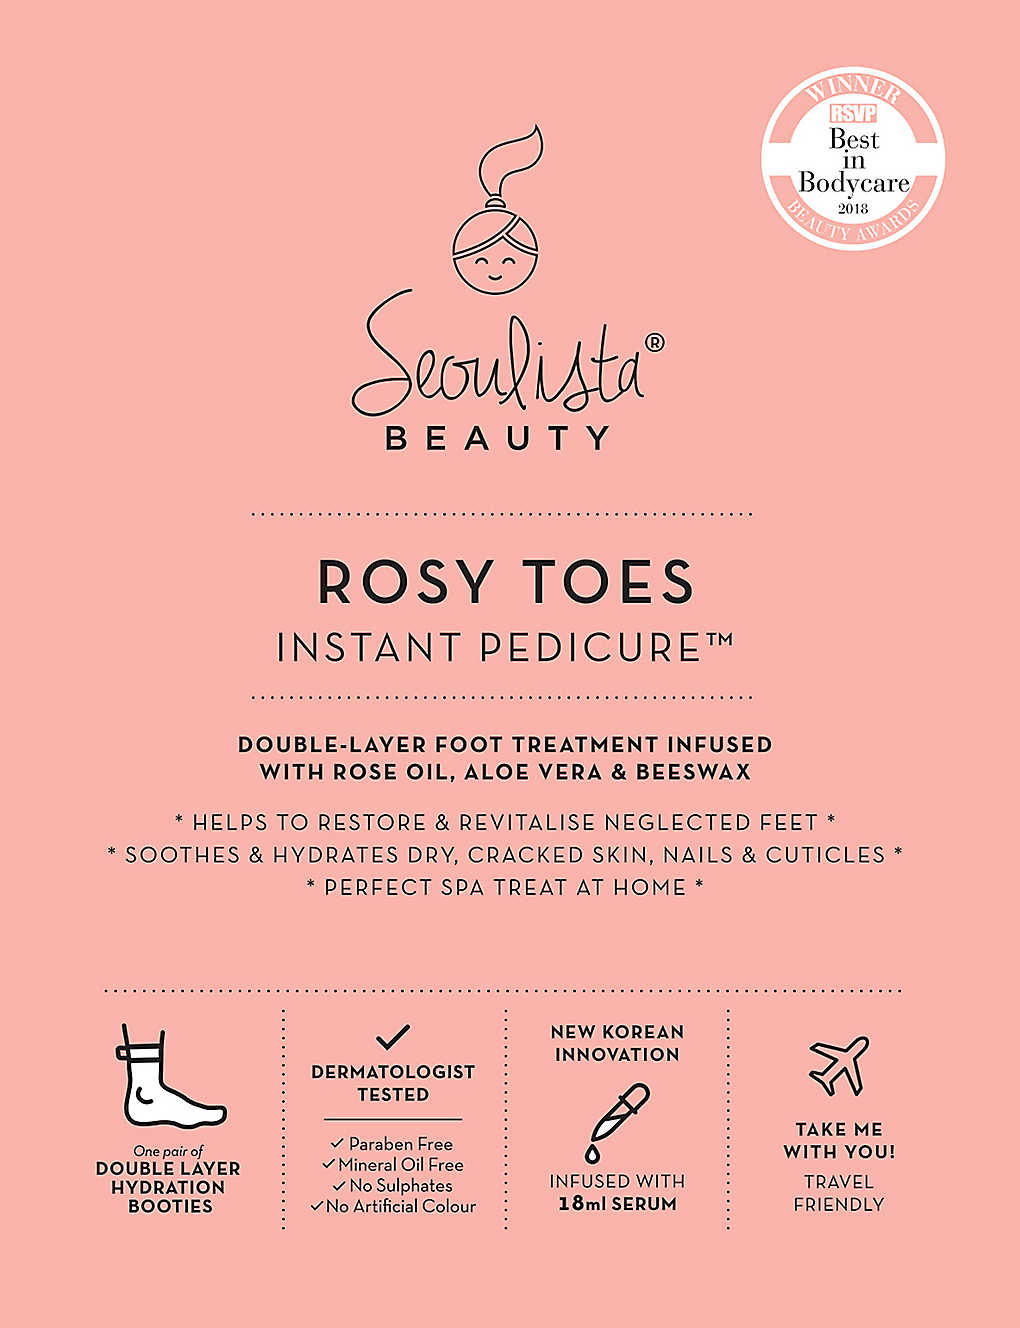 SEOULISTA: ROSY TOES Instant Pedicure